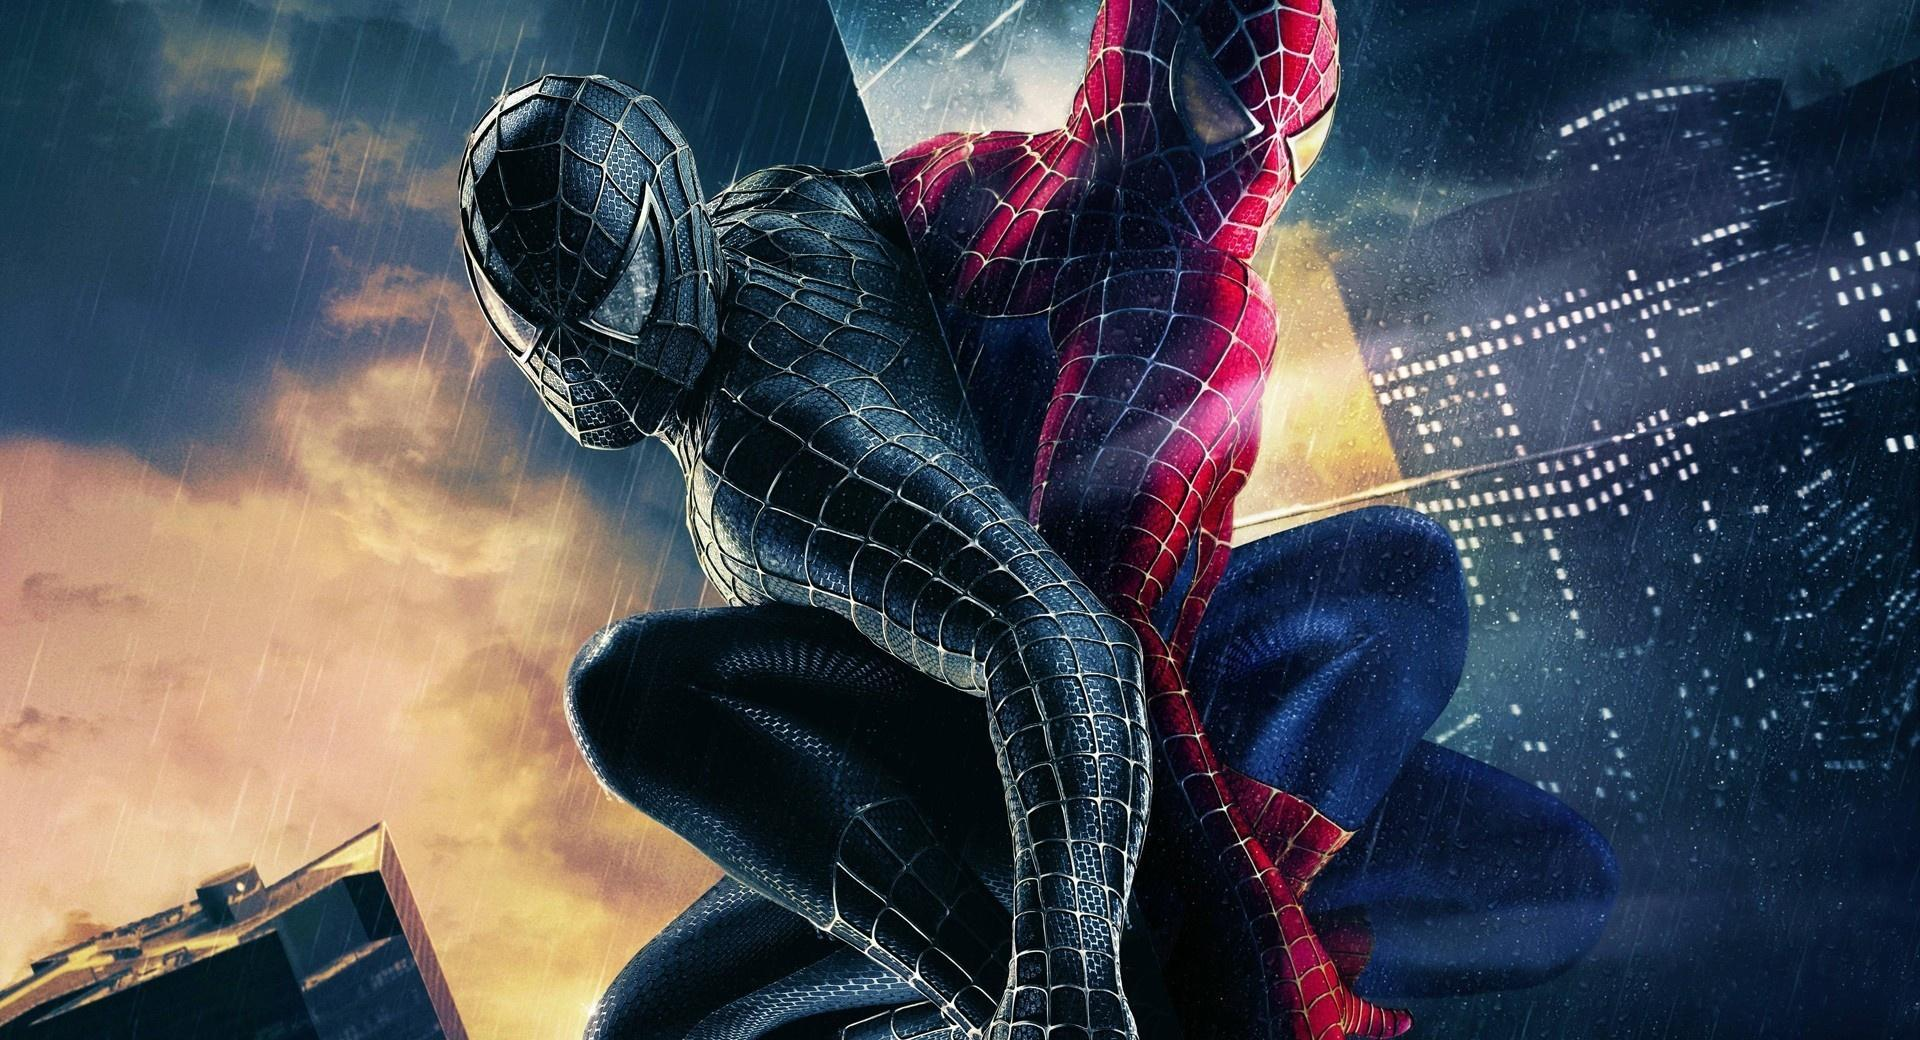 Black And Colored Spiderman wallpapers HD quality